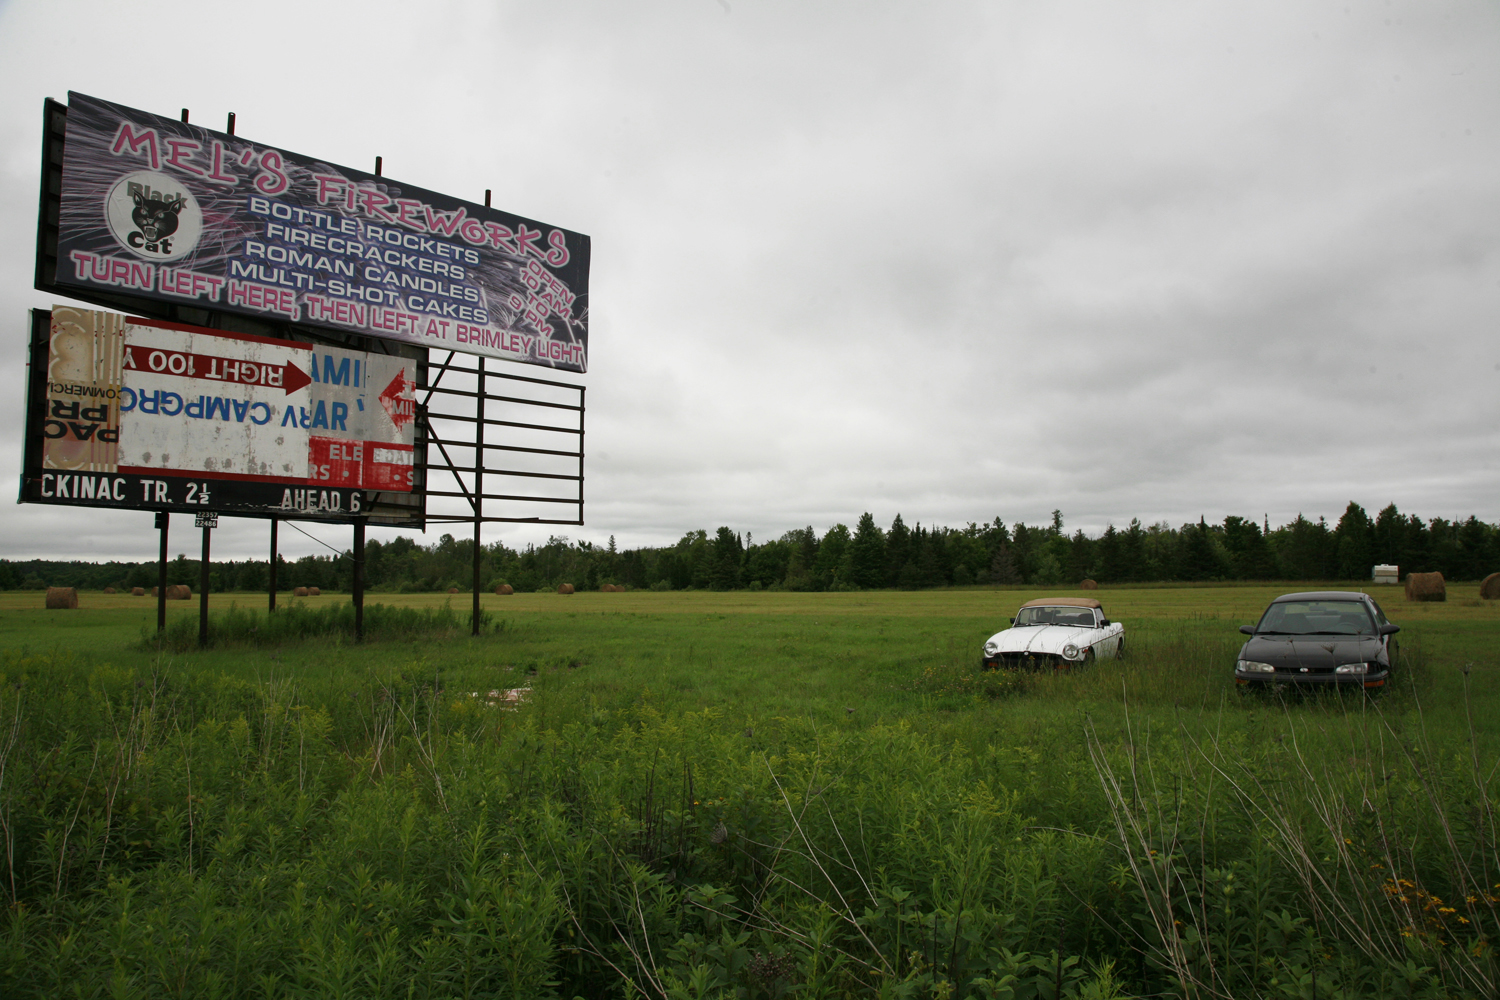 A documentary photograph of a billboard advertising fireworks in the midwest of the united states